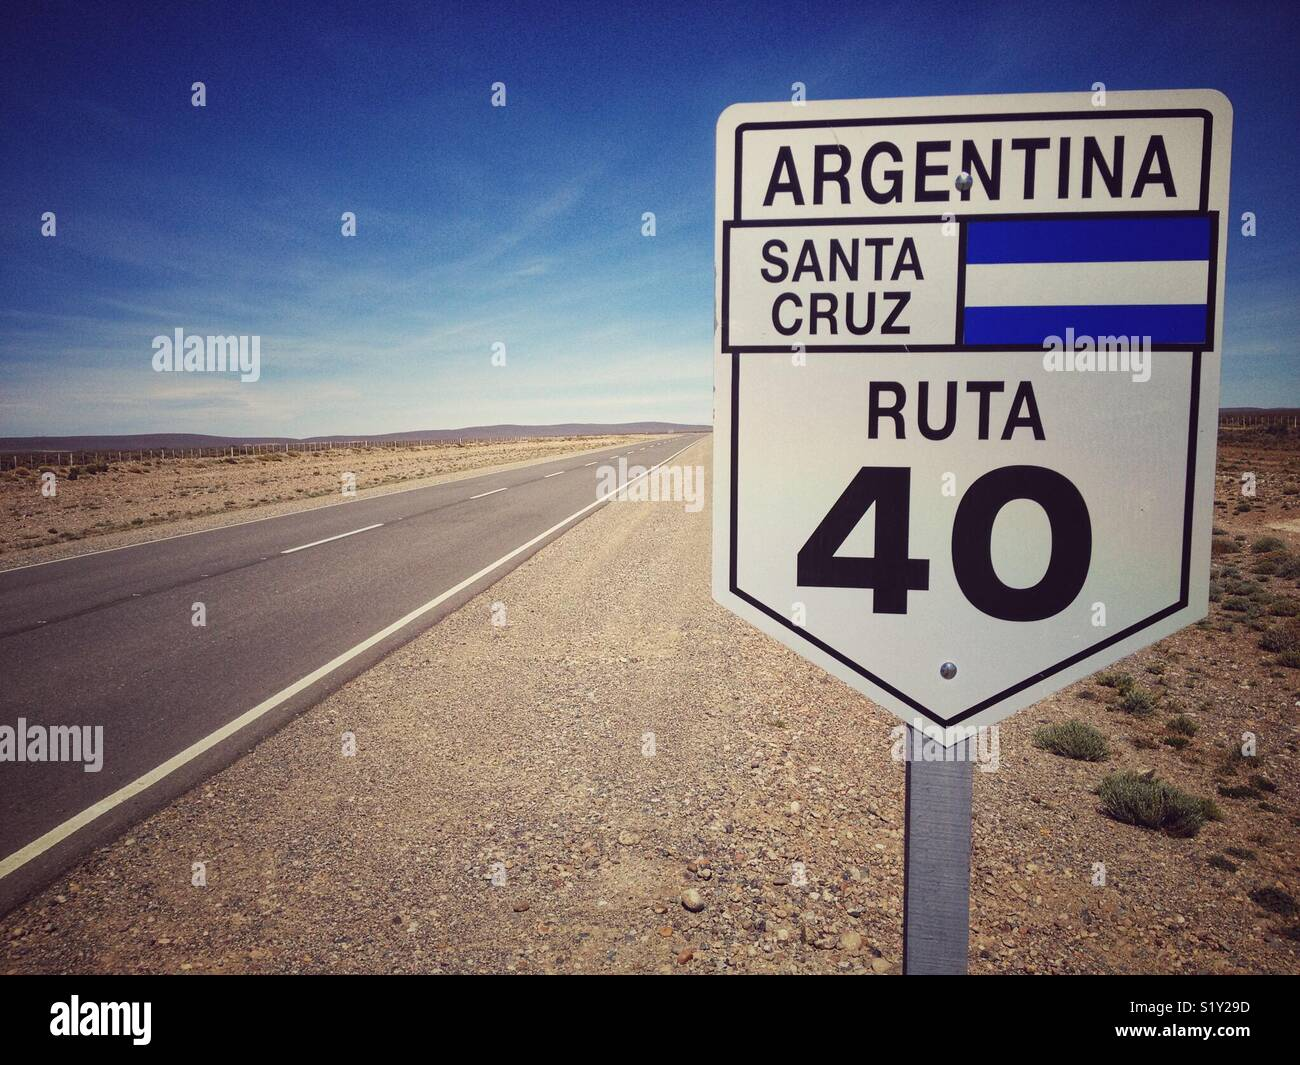 endless Ruta 40 in Argentina - Stock Image